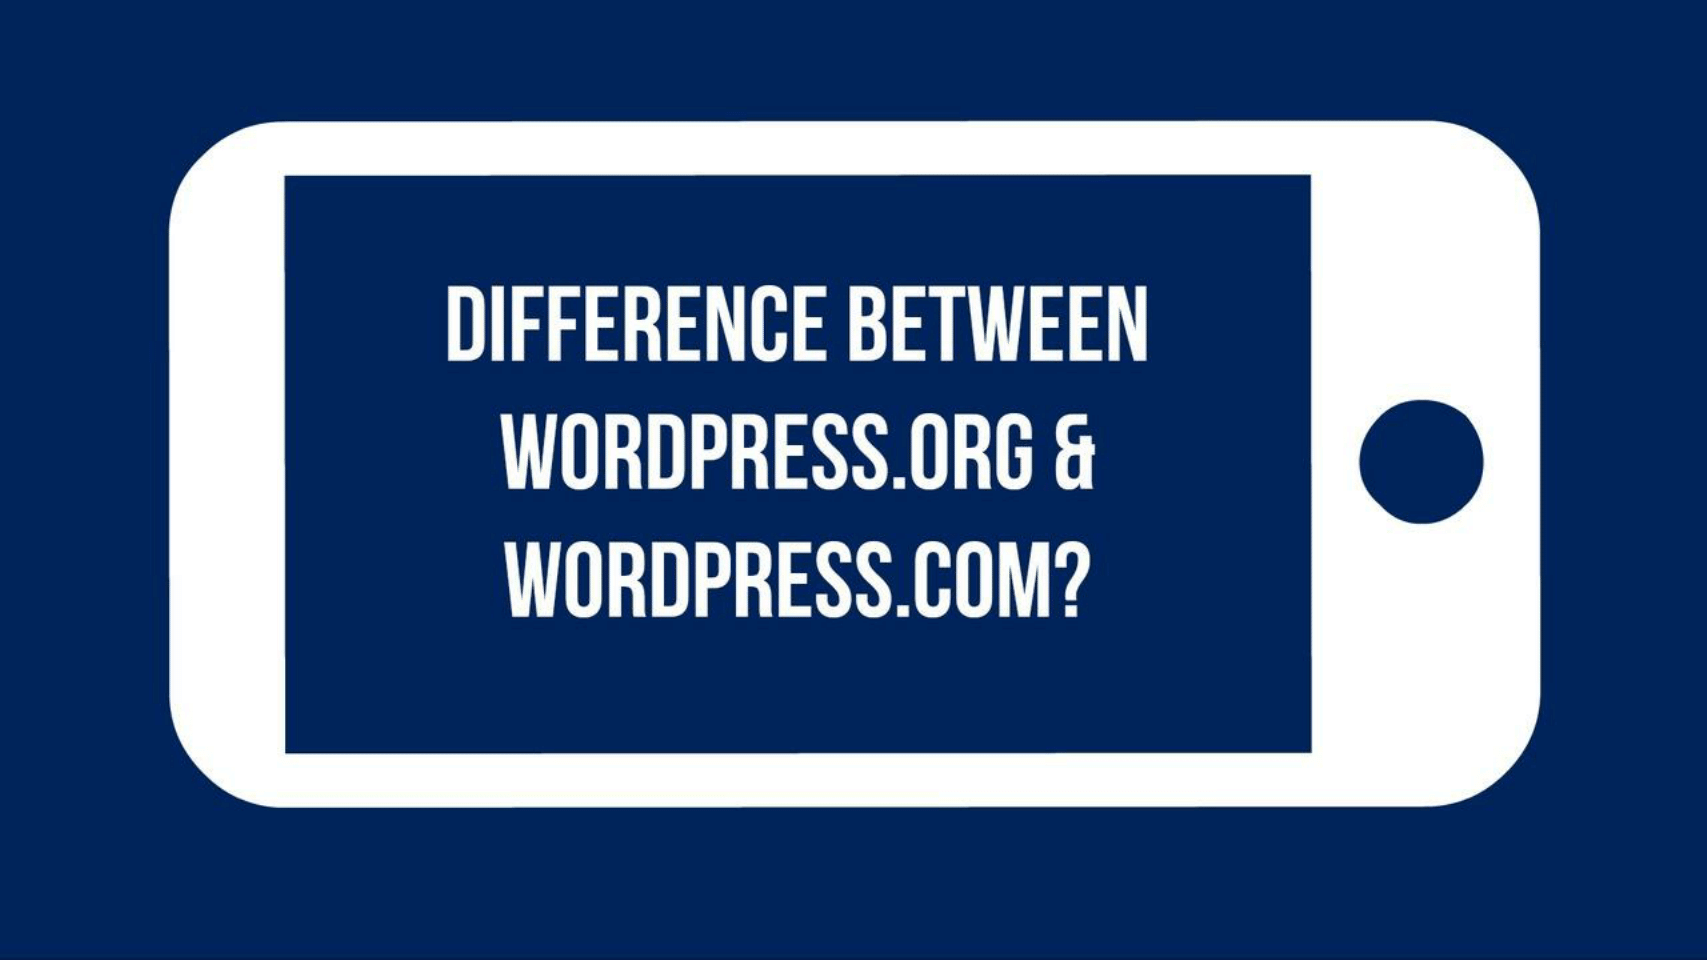 difference-between-wordpress.com-wordpress.org